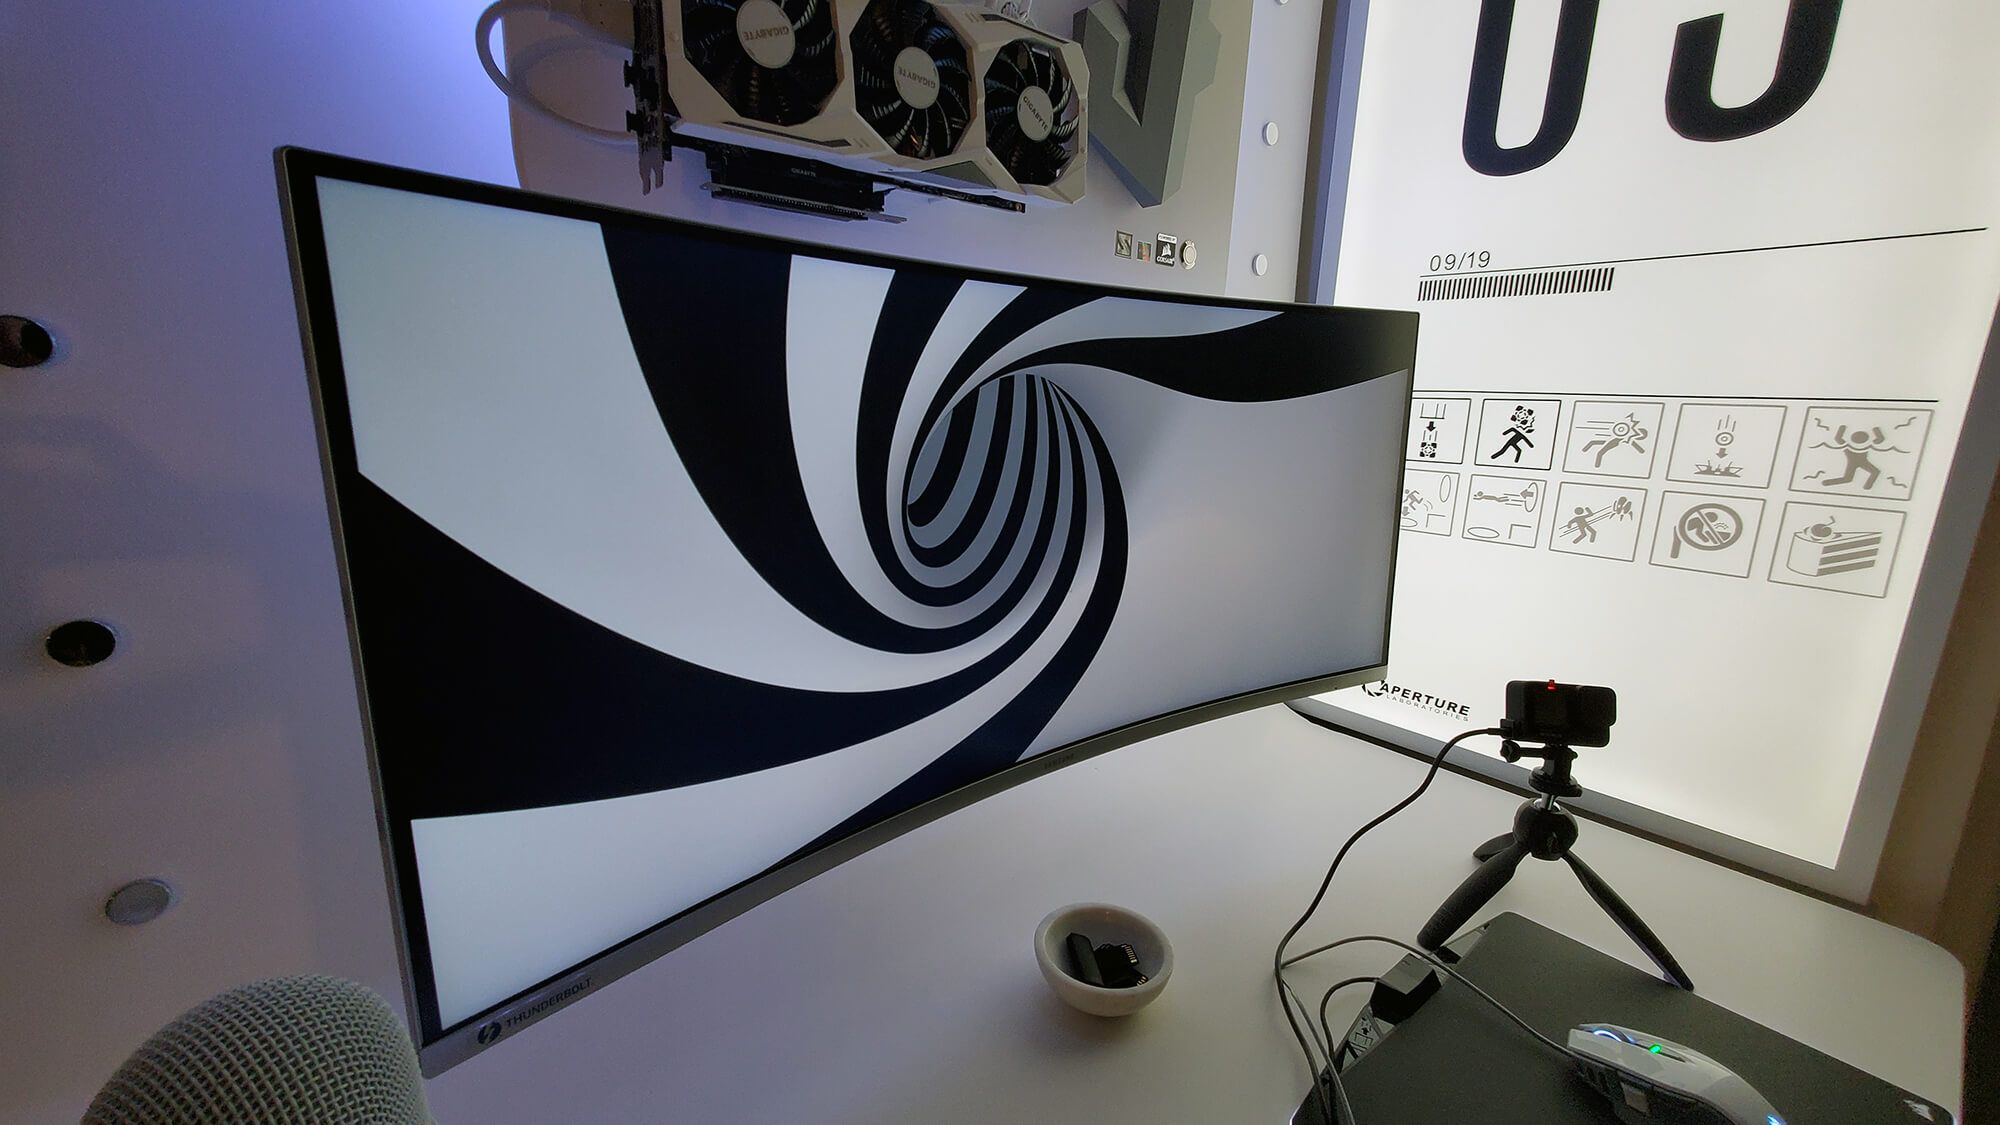 Wide and curved 34″ Samsung monitor (C34J79x) allows multi-tasking with a 21:9 aspect ratio